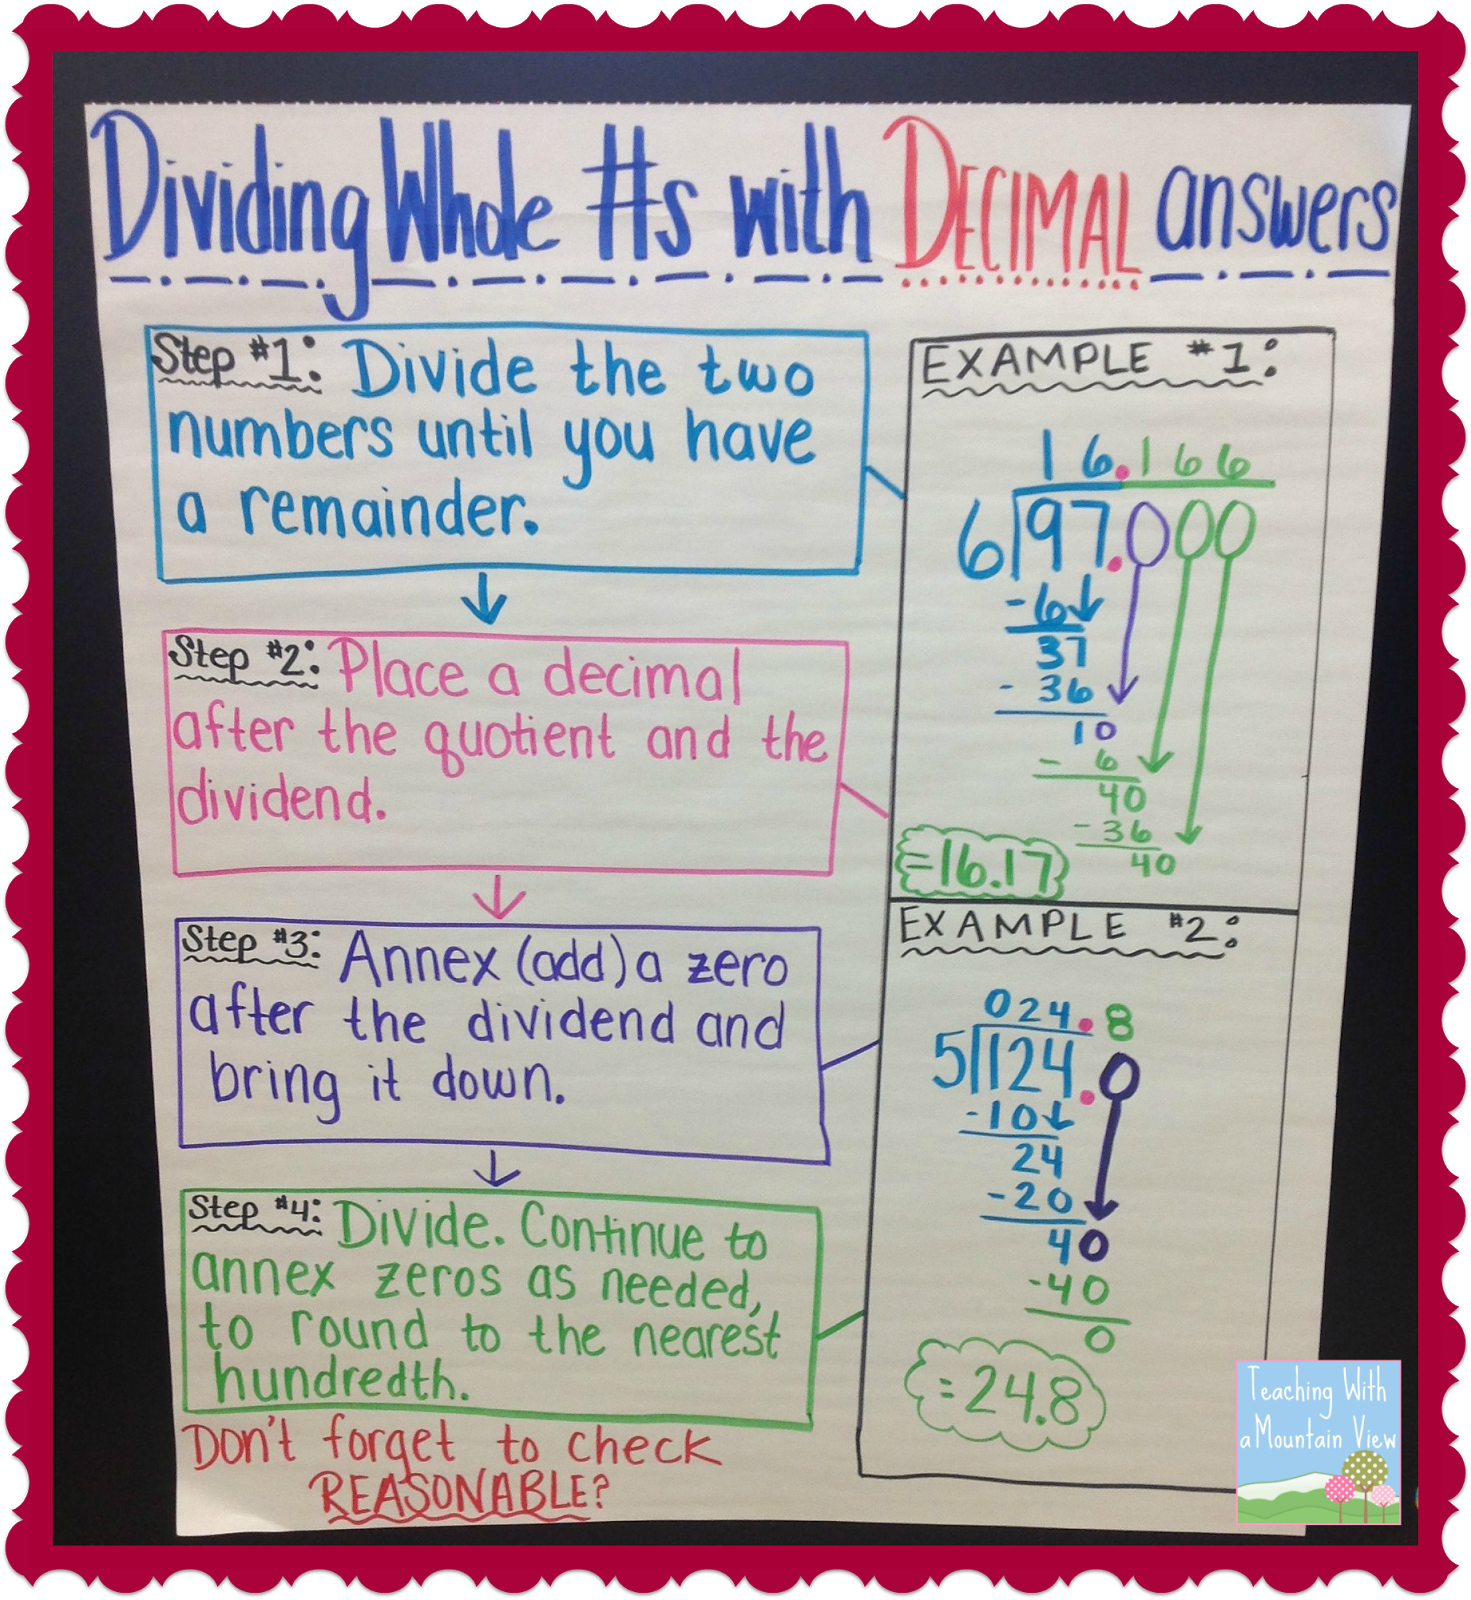 Worksheet For Dividing Decimals 5th Grade